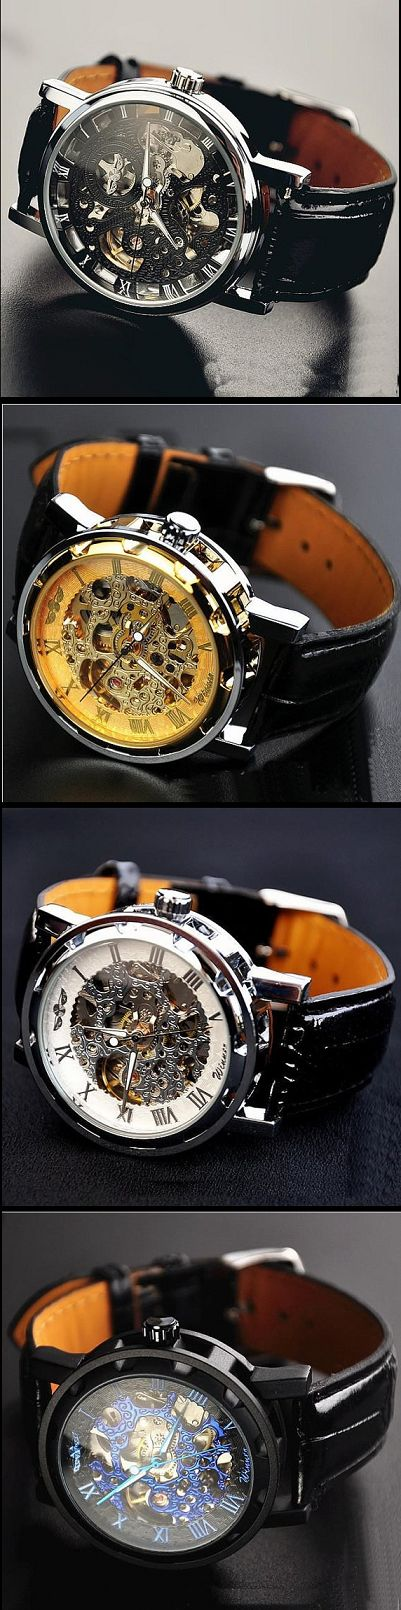 Mens Watch / Vintage Style Watch / Handmade Style Watch / Leather Watch / Chain Hollow Out Mechanical Watch (WAT0042-black) - Thumbnail 4